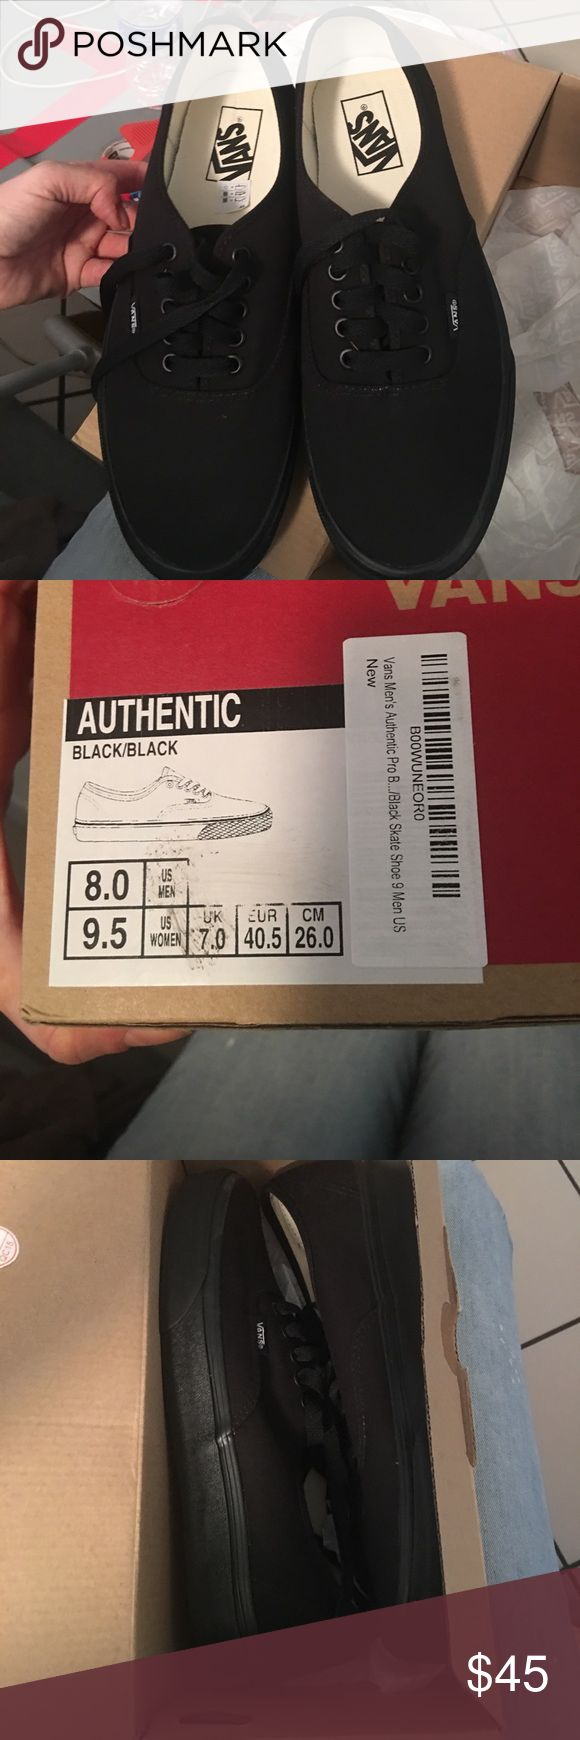 Vans Men/Women Authentic Pro Skate Shoe Black Brand new with box Vans Men's Authentic Pro Skate Shoe Black/Black. Mens size 8 and woman's size 9.5. Solid black from head to toe. You can never go wrong with a pair of vans. Definitely a great shoe for all to enjoy! vans Shoes Sneakers